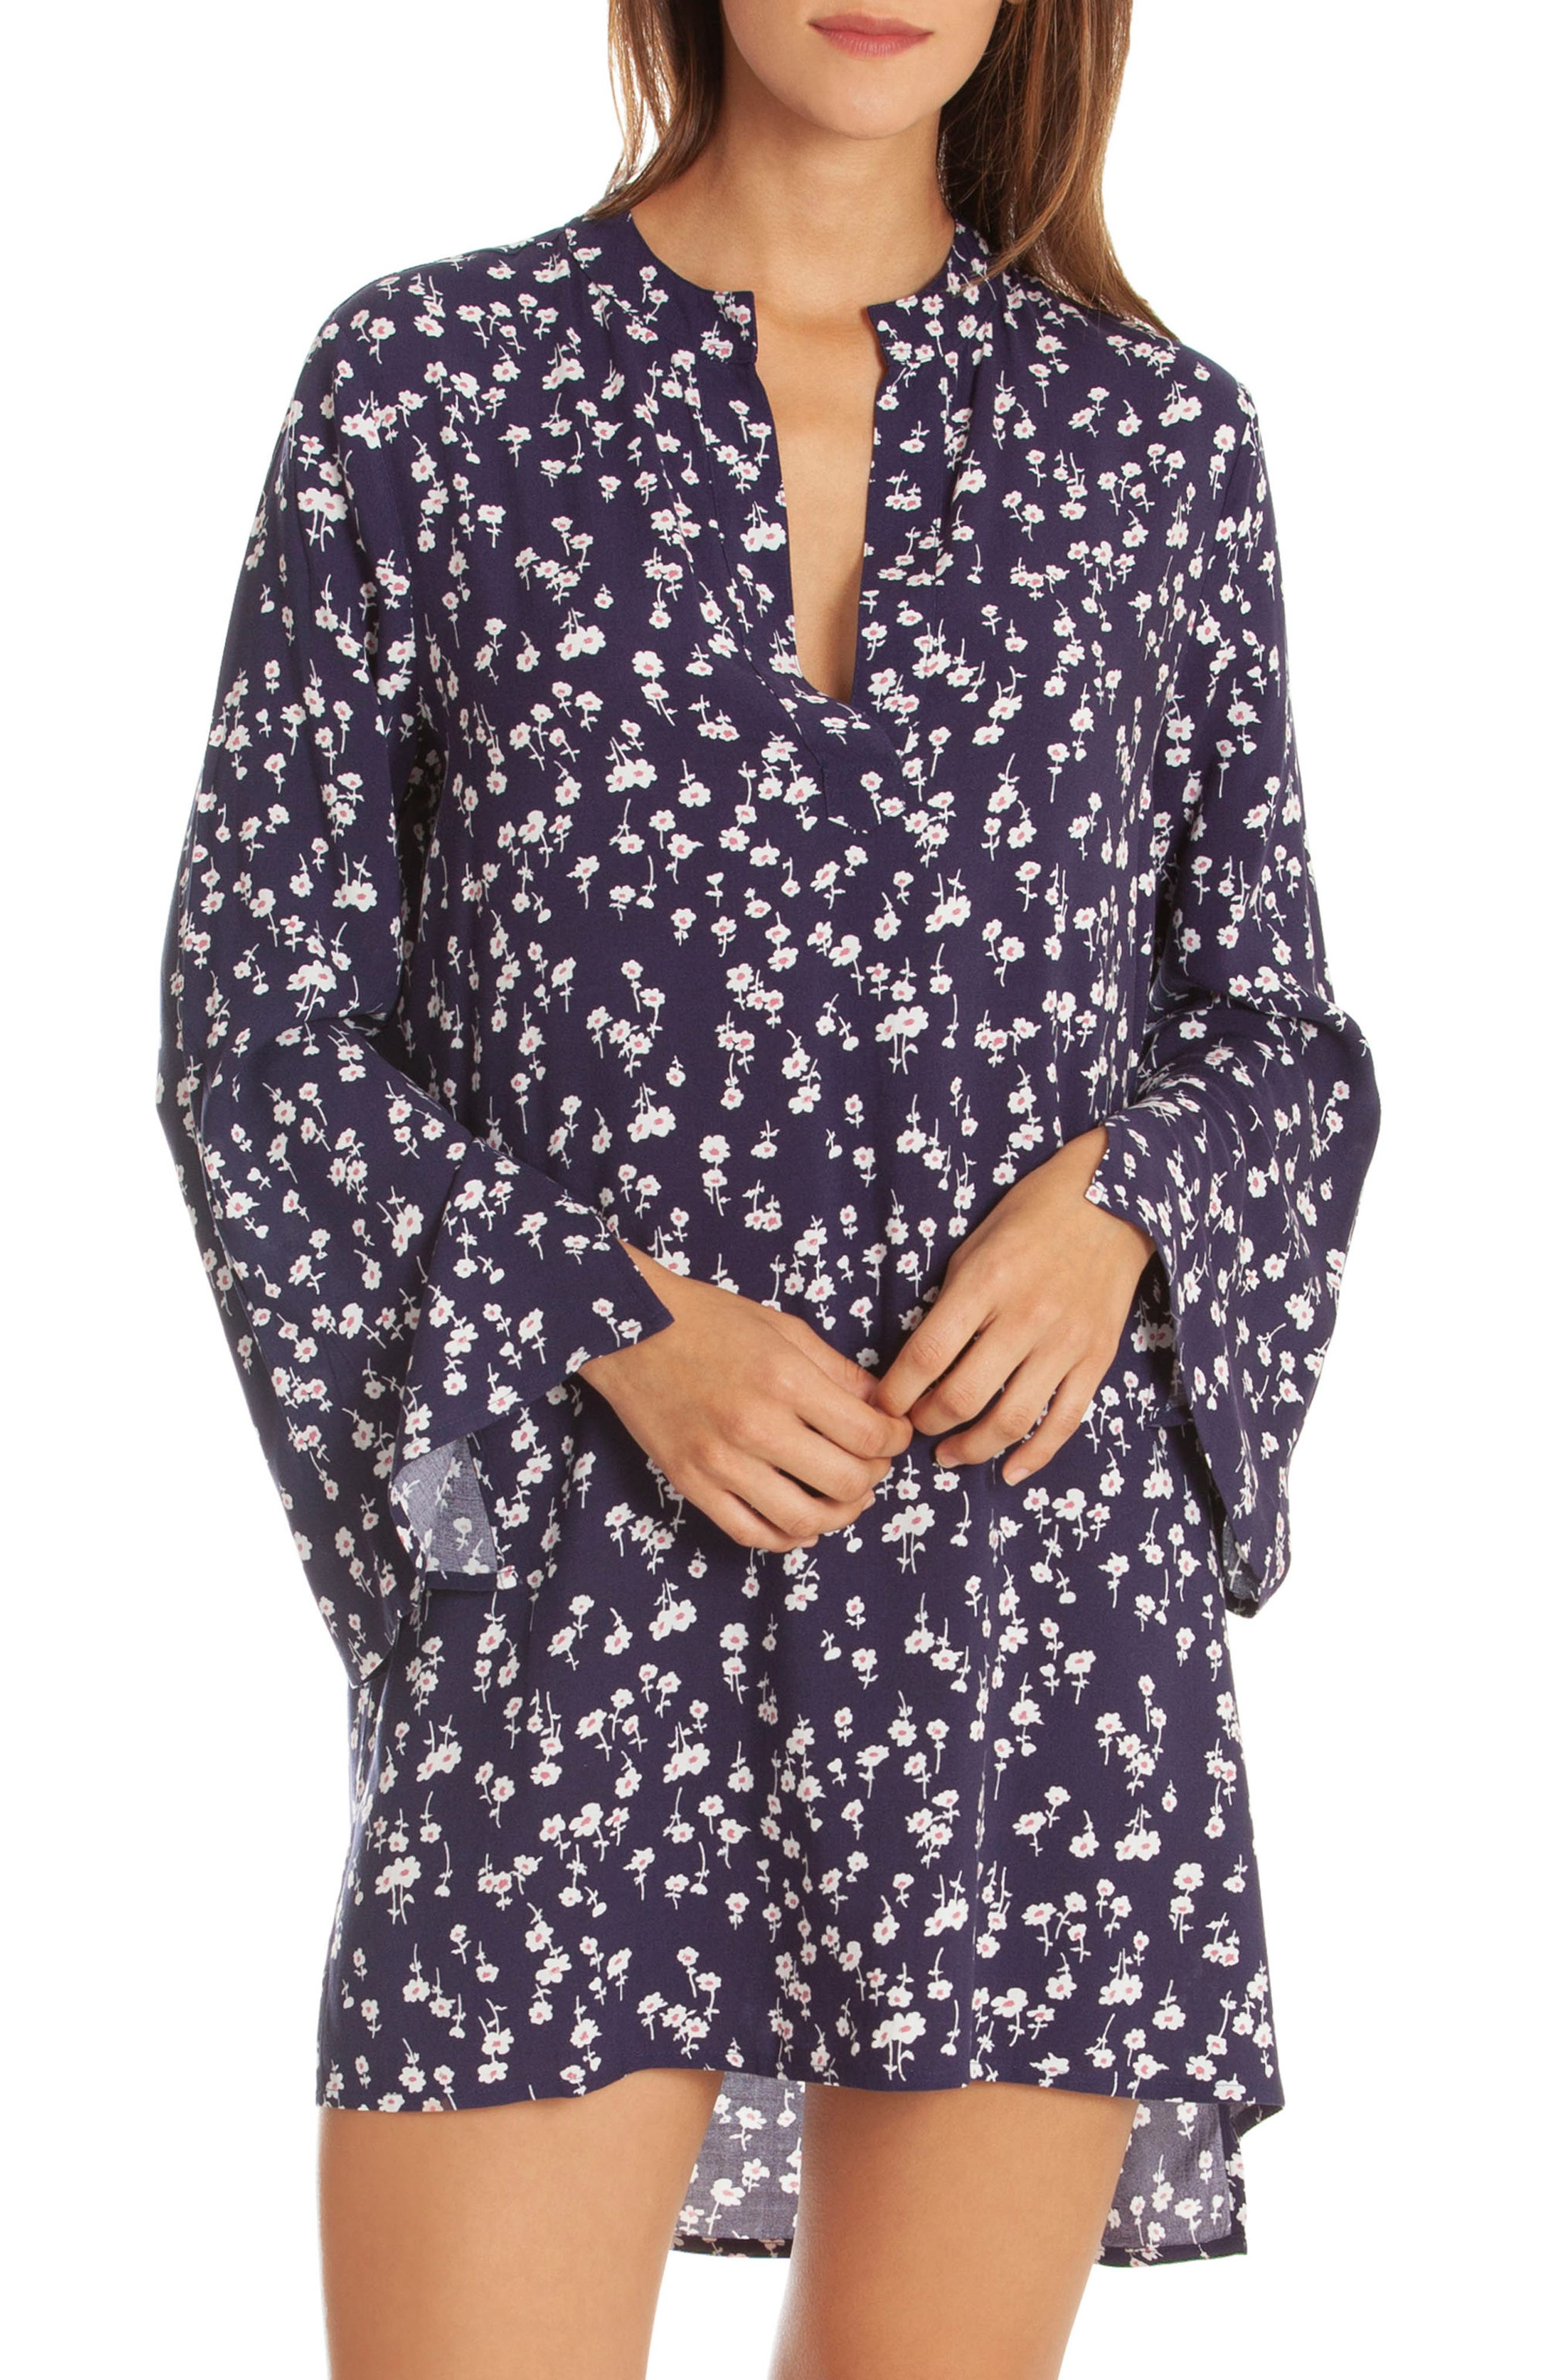 IN BLOOM BY JONQUIL FLORAL SLEEP SHIRT